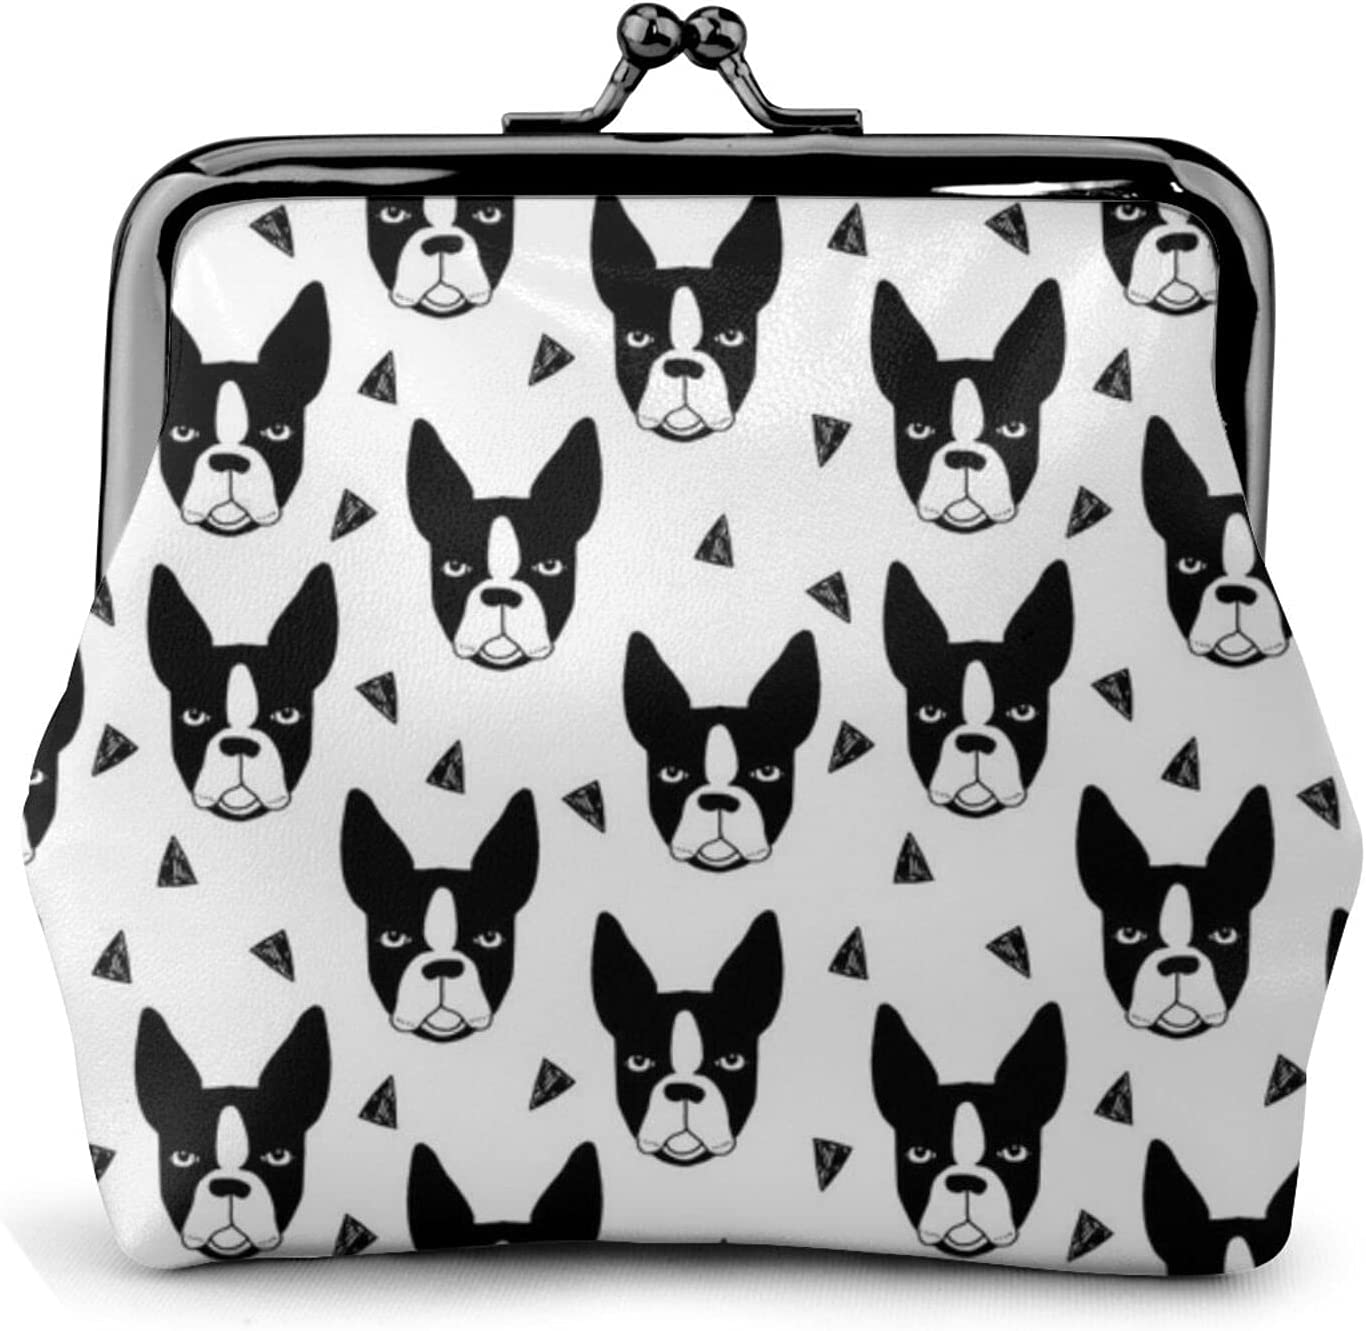 Boston Terrier Boston 939 Coin Purse Retro Money Pouch with Kiss-lock Buckle Small Wallet for Women and Girls